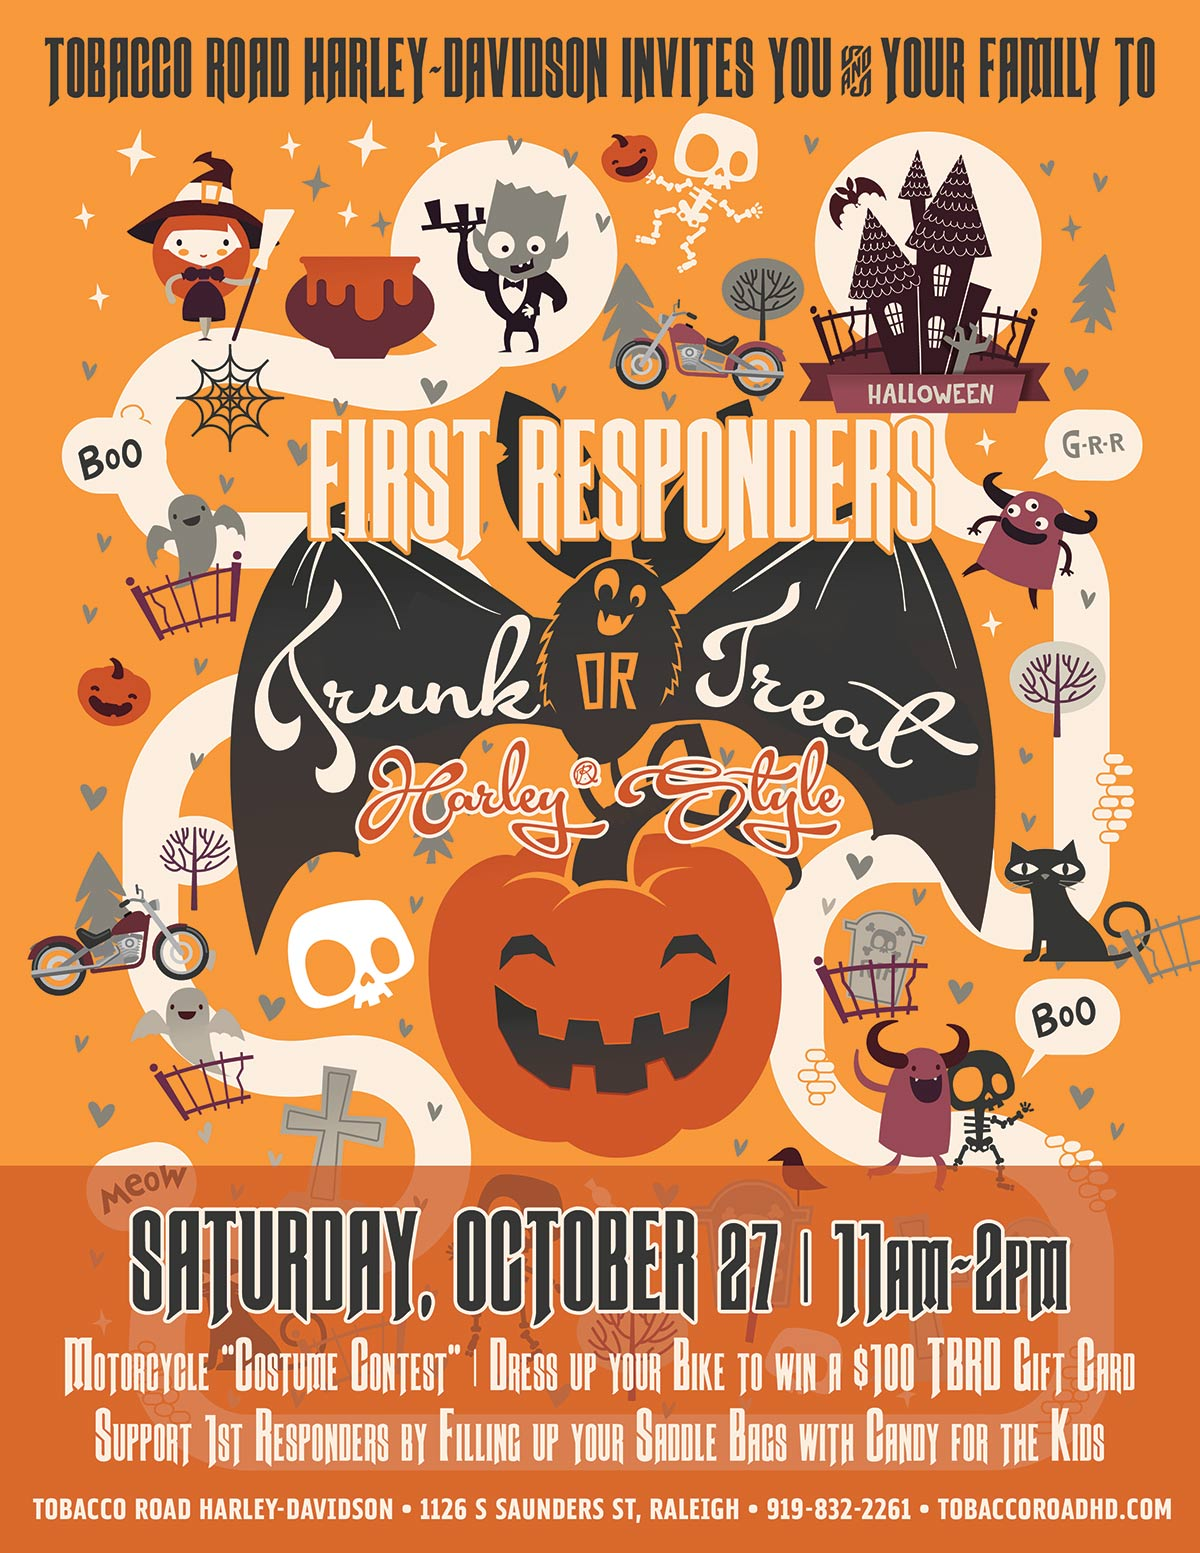 First Responders Trunk or Treat